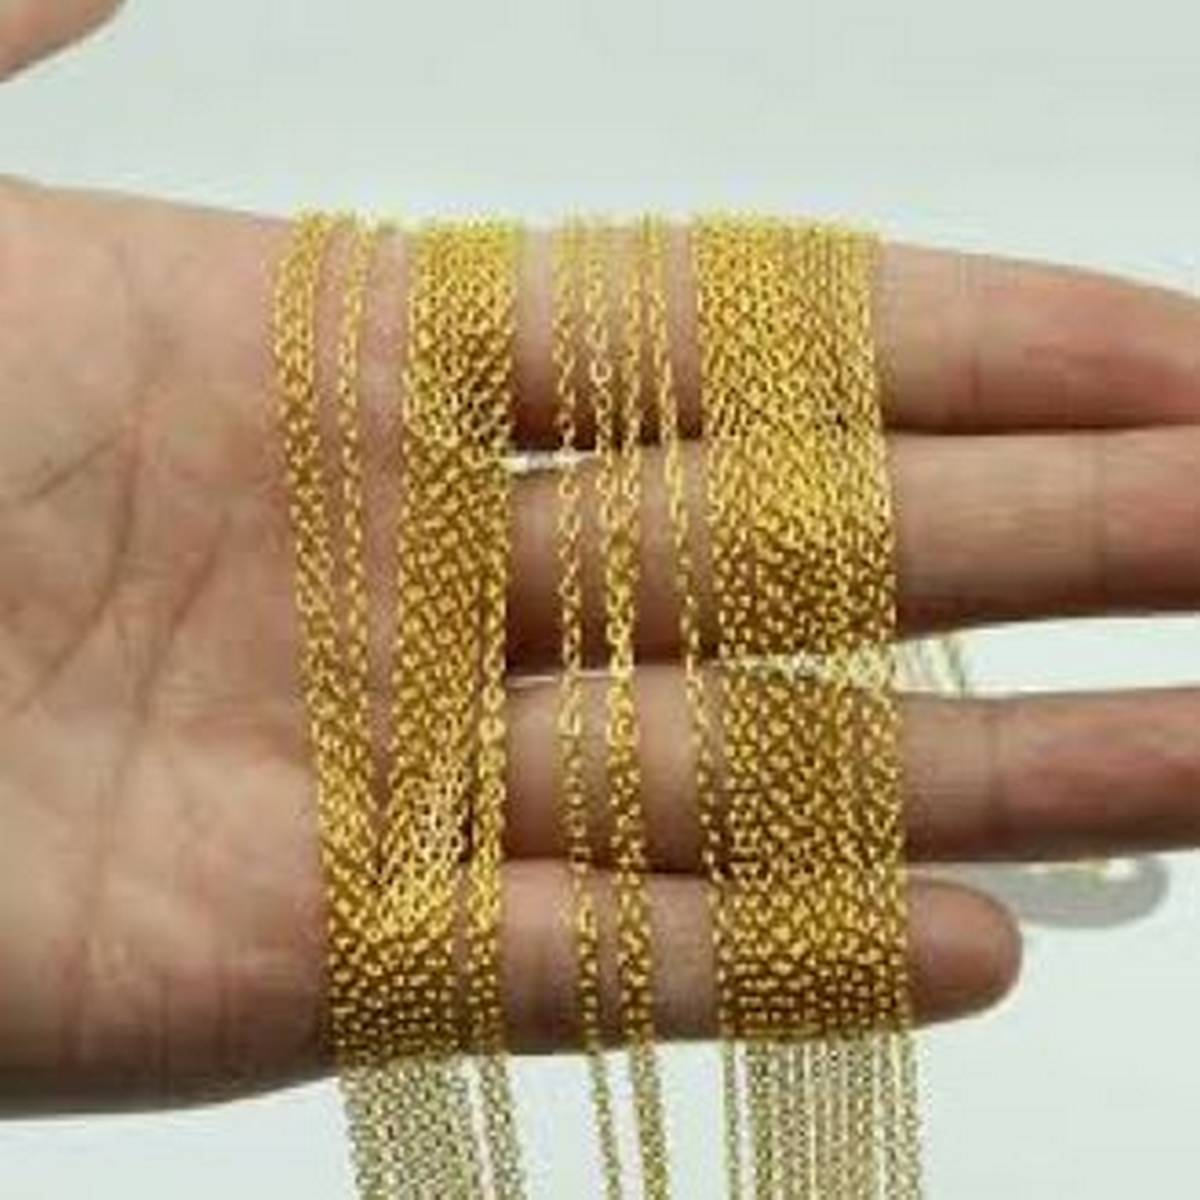 100cm Silver And Gold Necklace Charm Chains For DIY Jewelry Findings Making Materials Accessories Wholesale